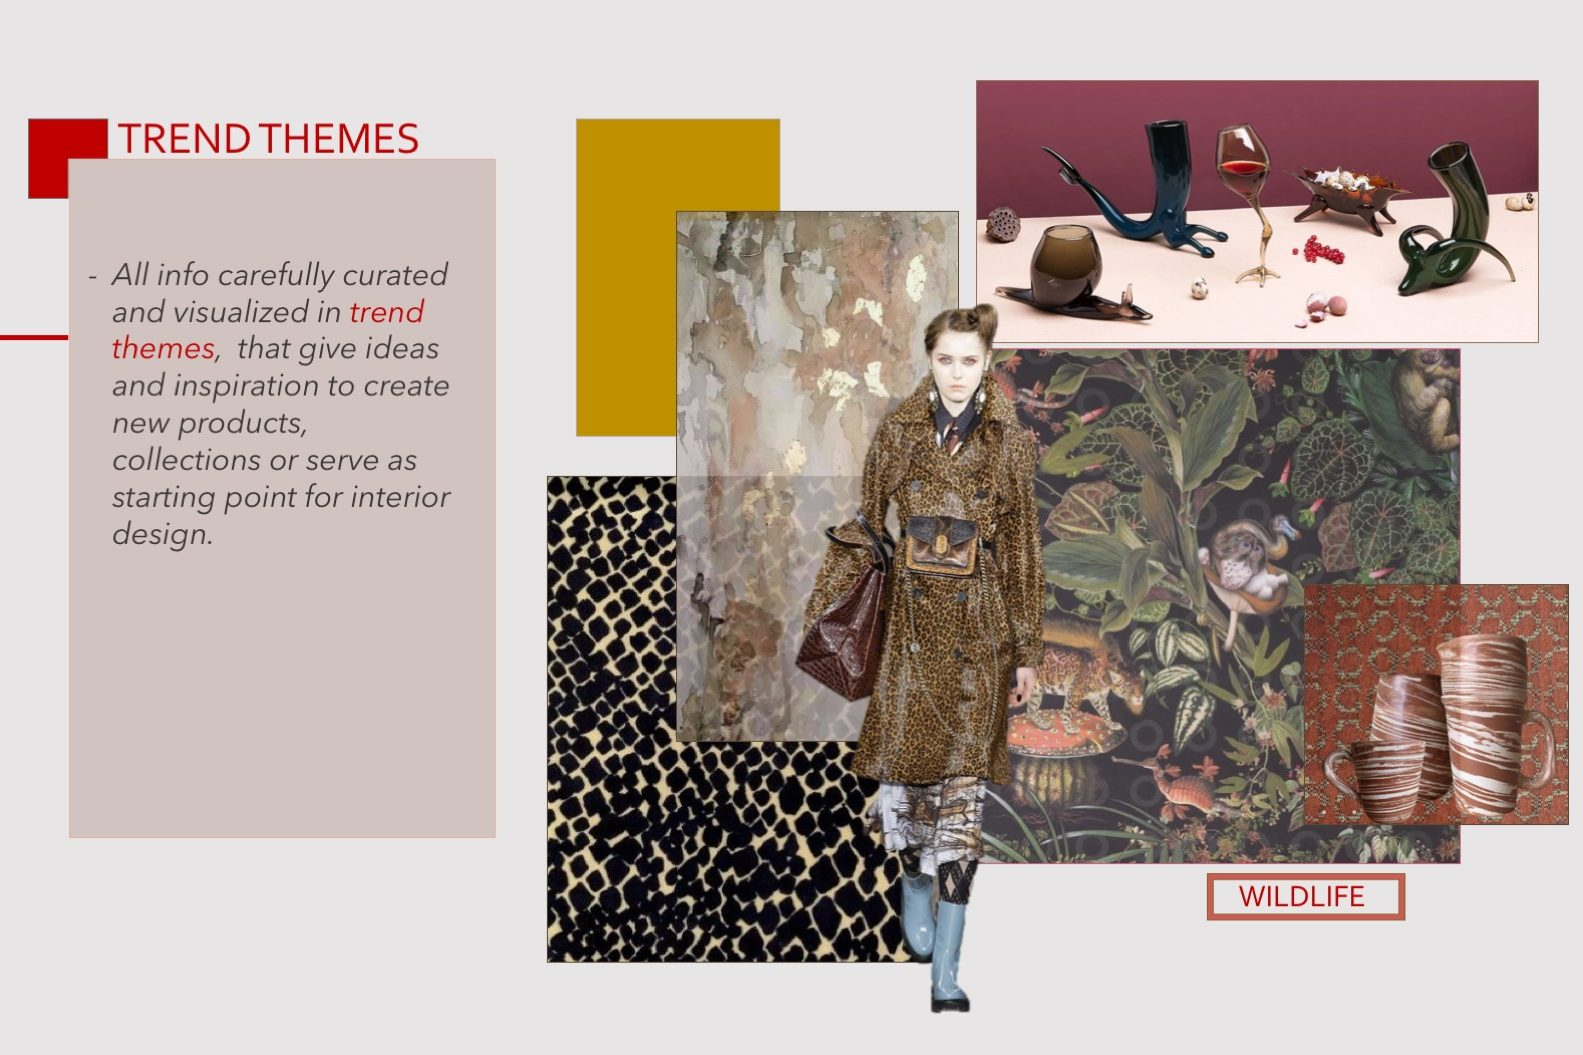 Trend Themes. All info carefully curated and visualized in trend themes, that give ideas and inspiration to create new products, collections or serve as starting point for interior design.